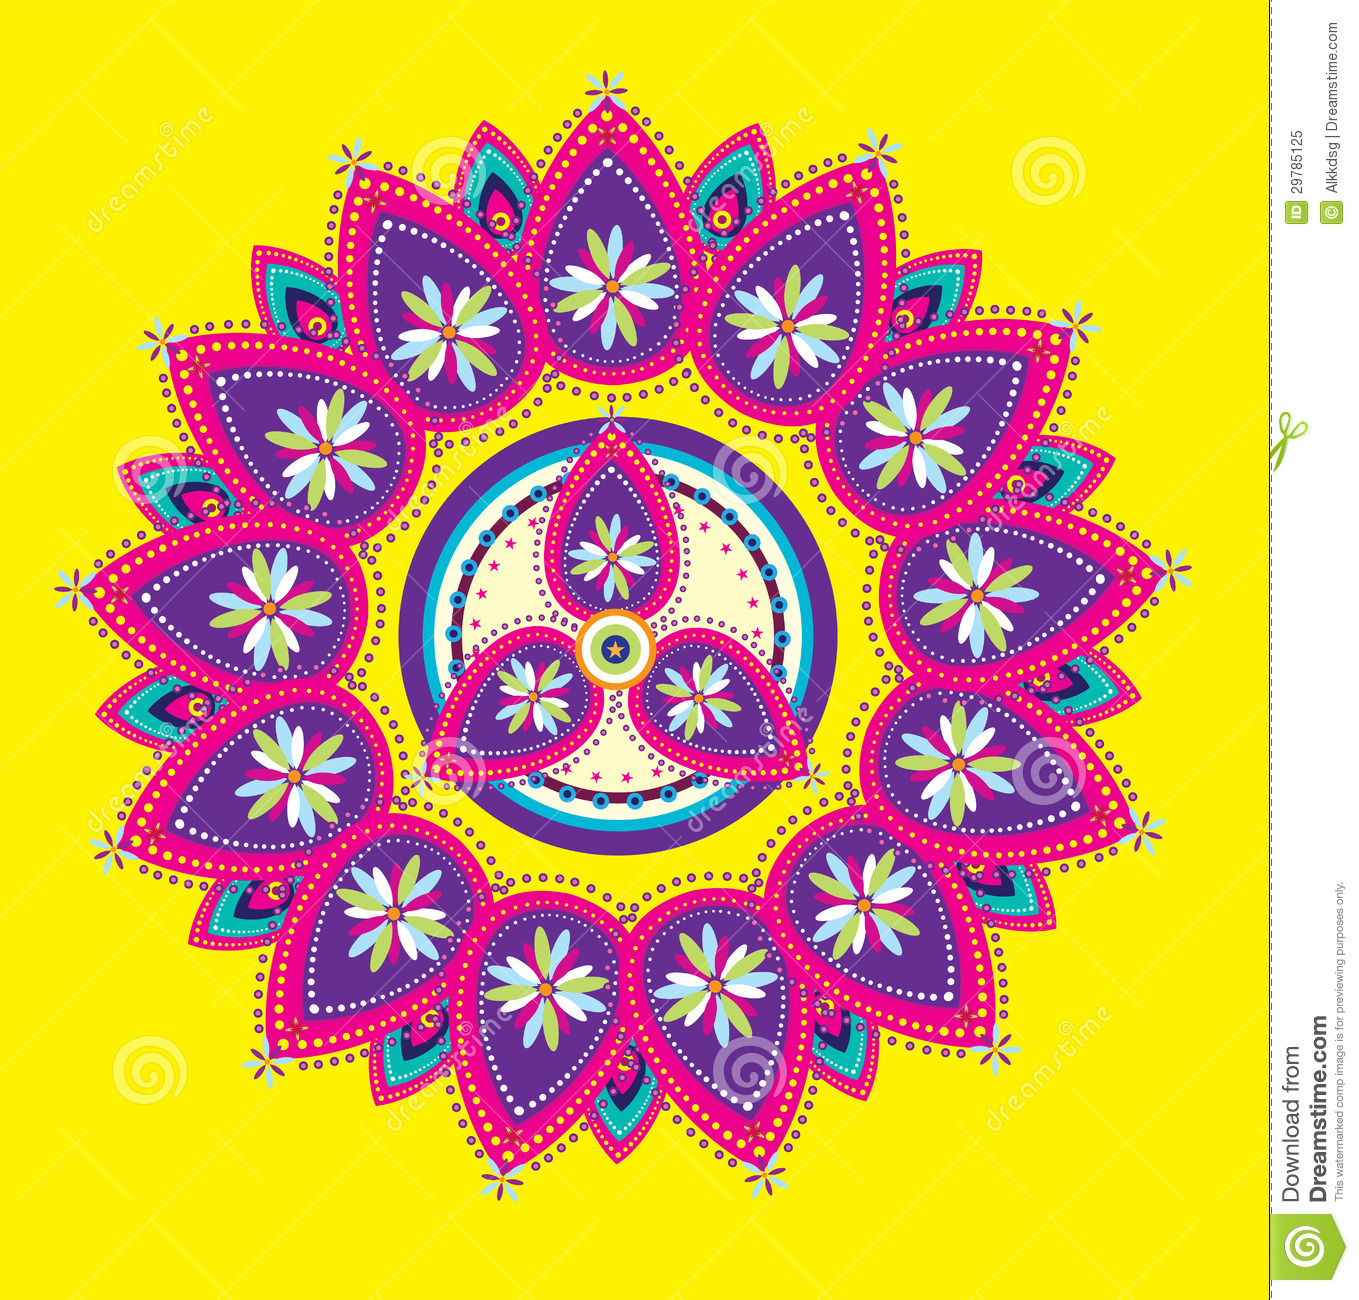 colourful indian patterns and designs